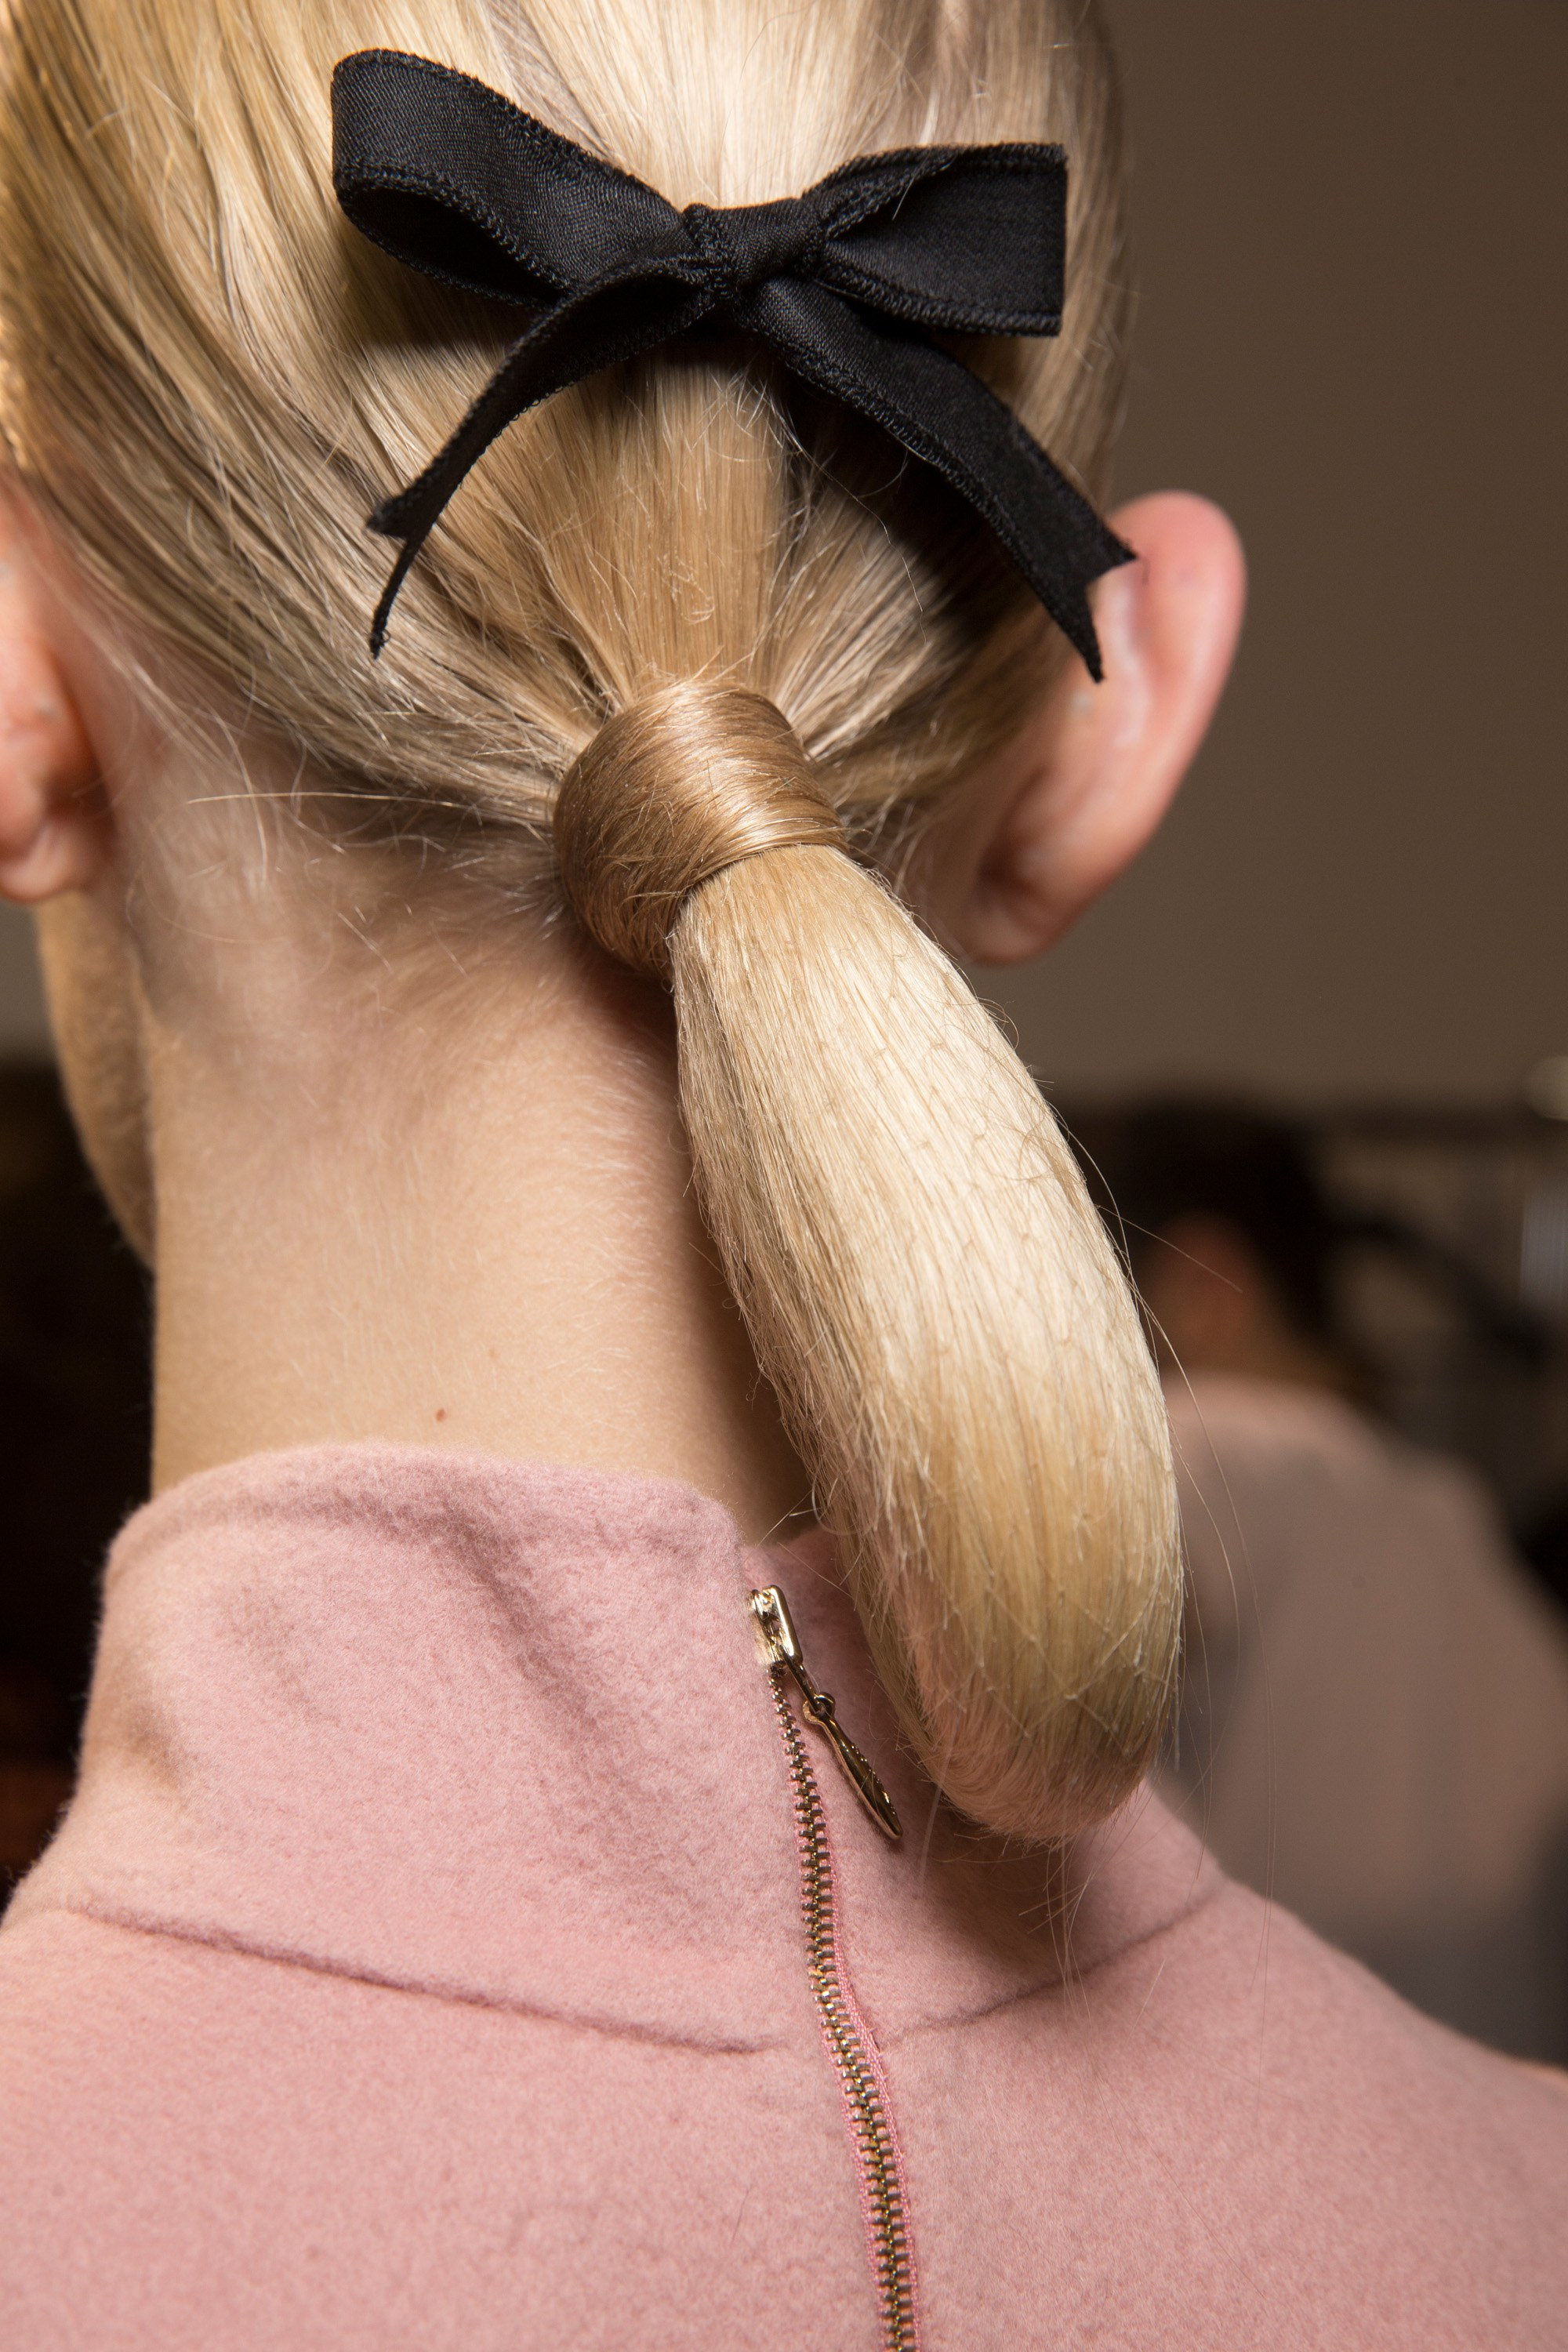 Most Recently Released Black Bow Ponytail Hairstyles Intended For Salon Collage – Hair And Beauty Salon (View 16 of 20)